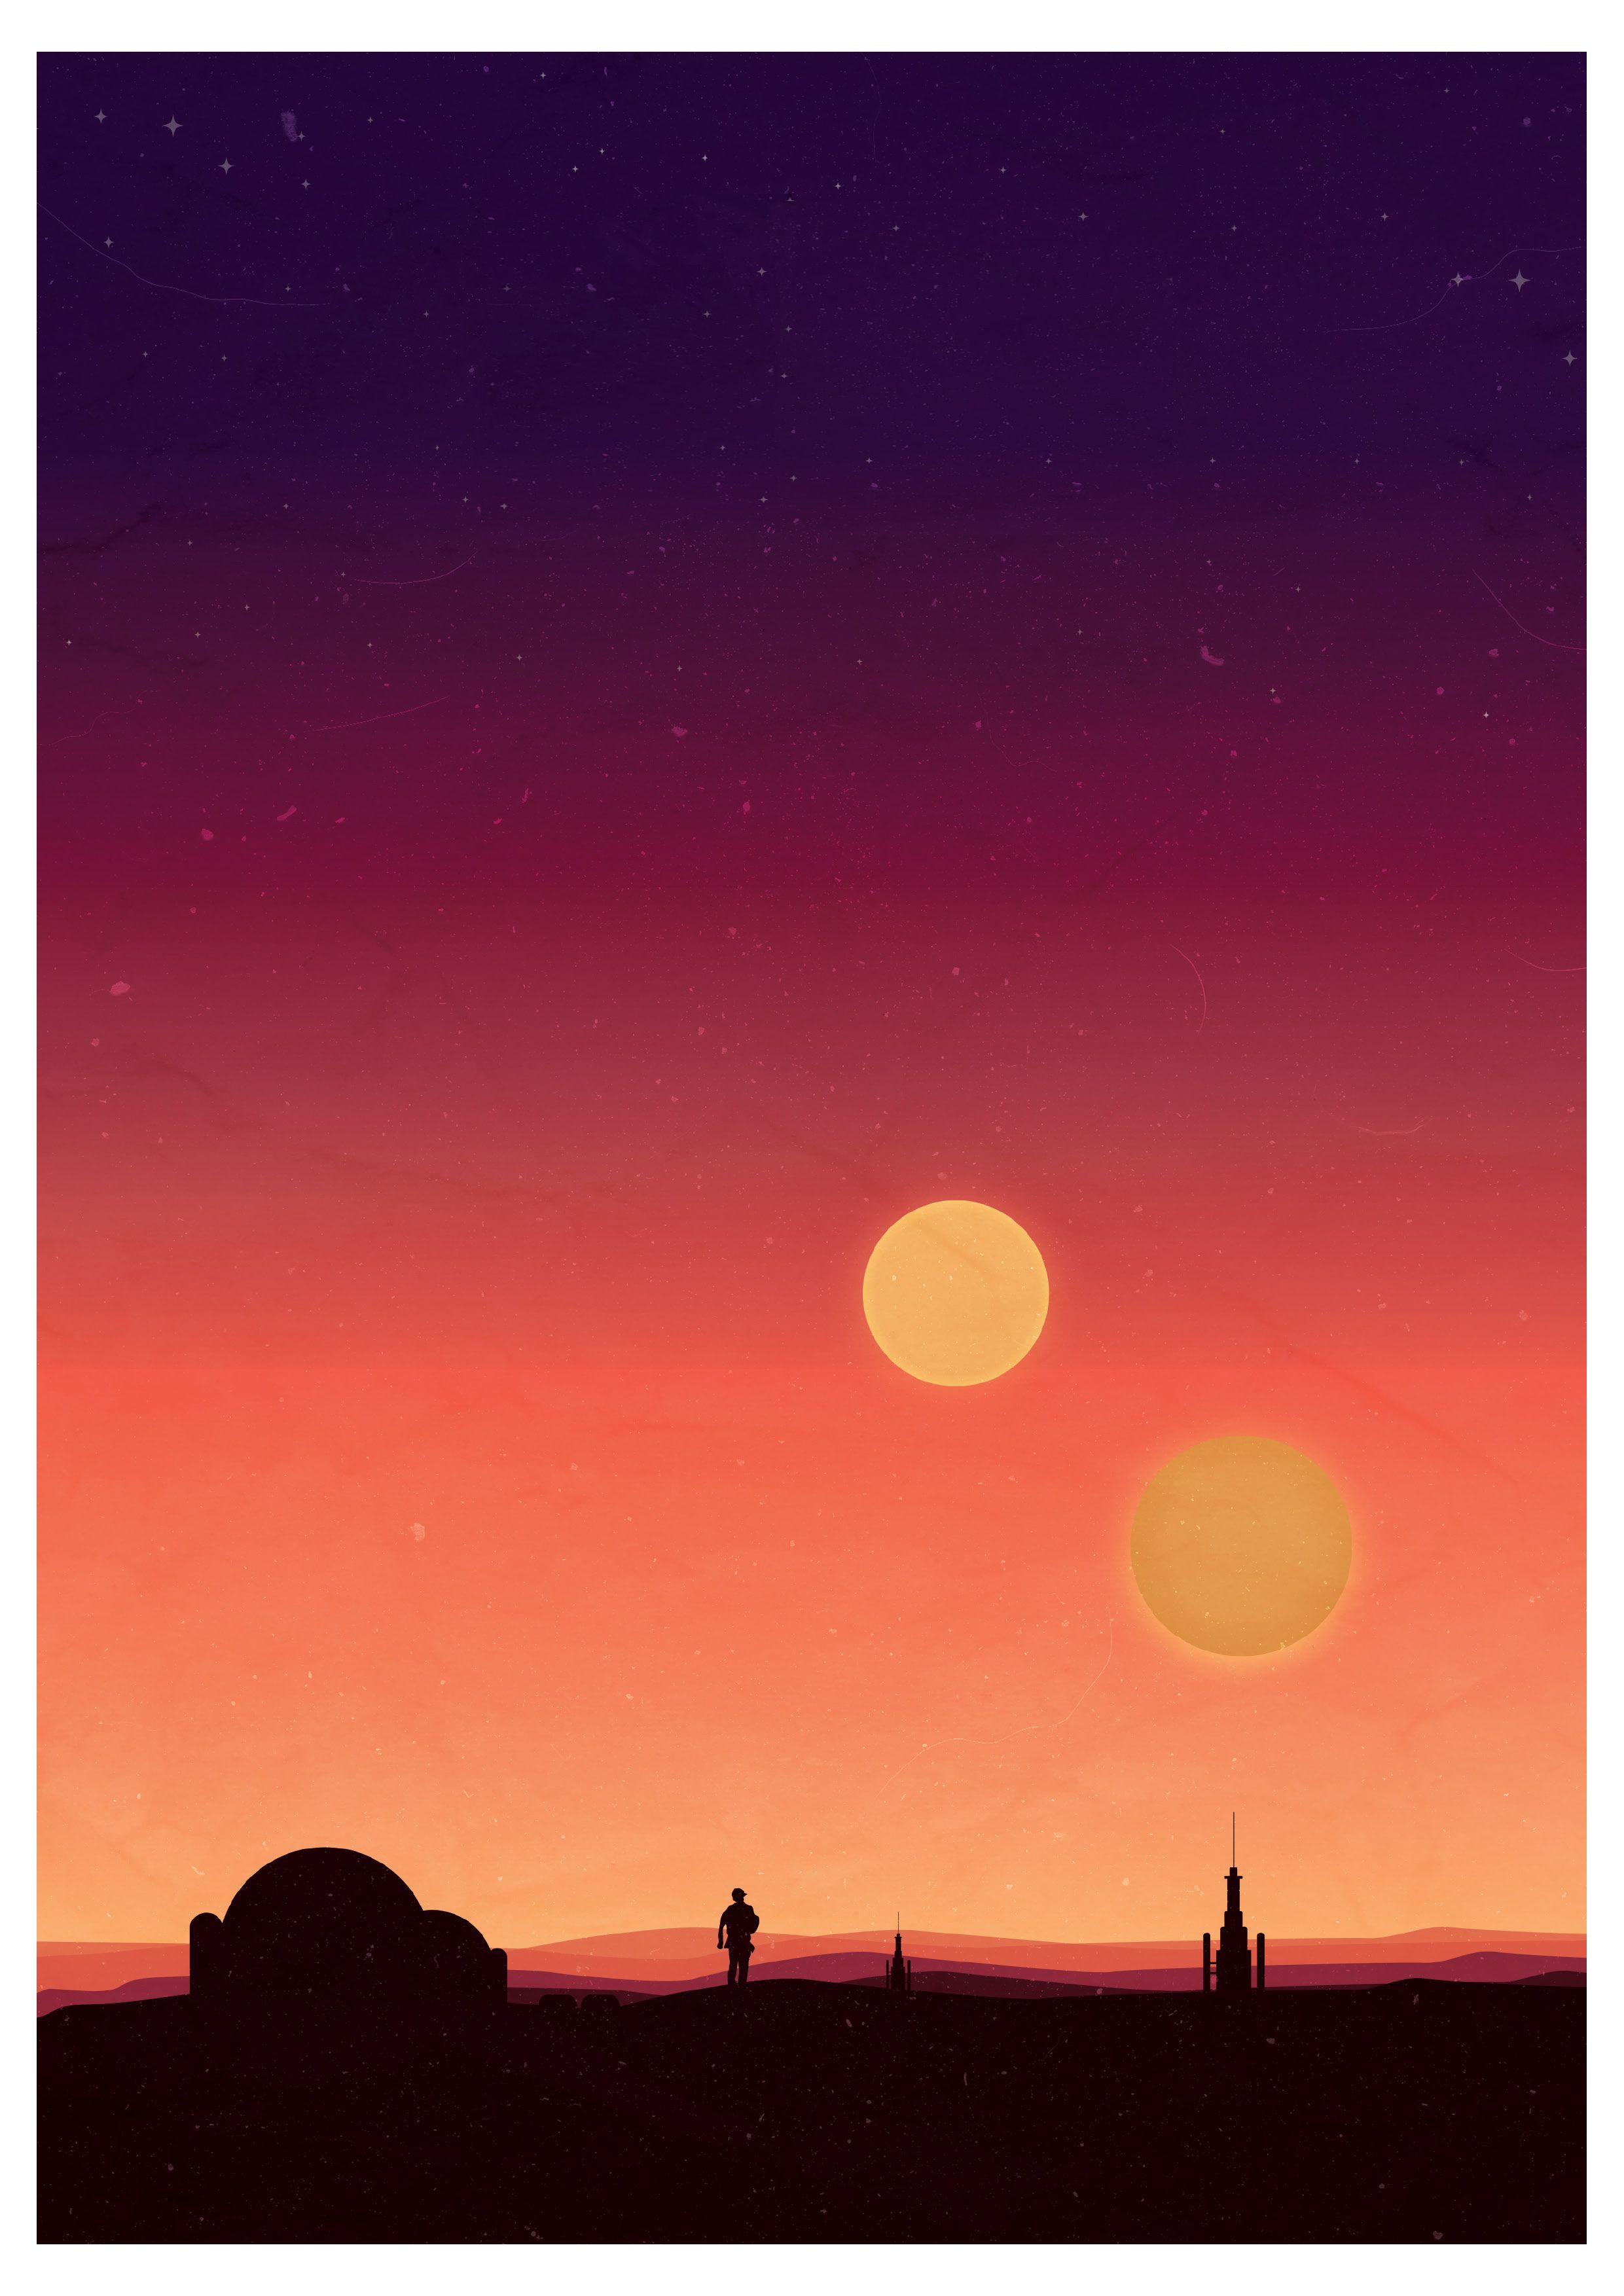 2481x3508 Tatooine Two Suns Wallpaper (110+ images in Collection) Page 1